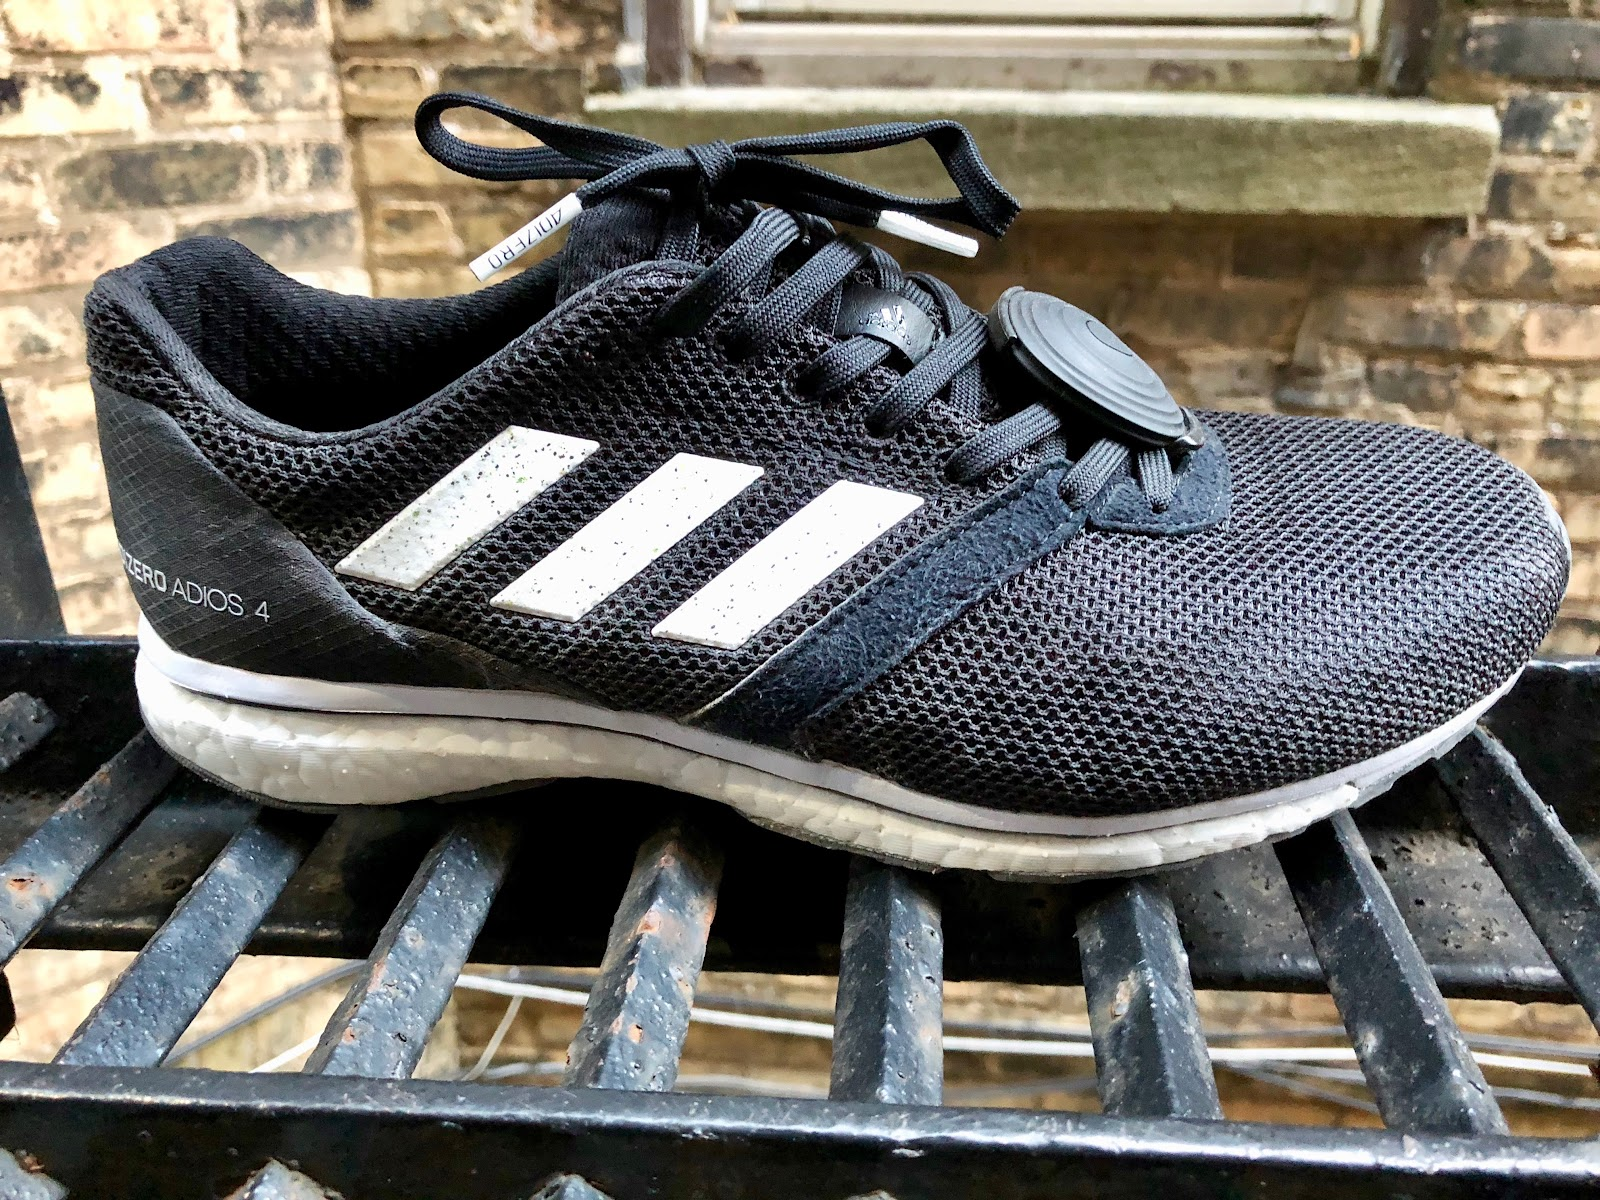 bba70d8e1a9d Road Trail Run  adidas adizero adios 4 Review  Fast Classic ...